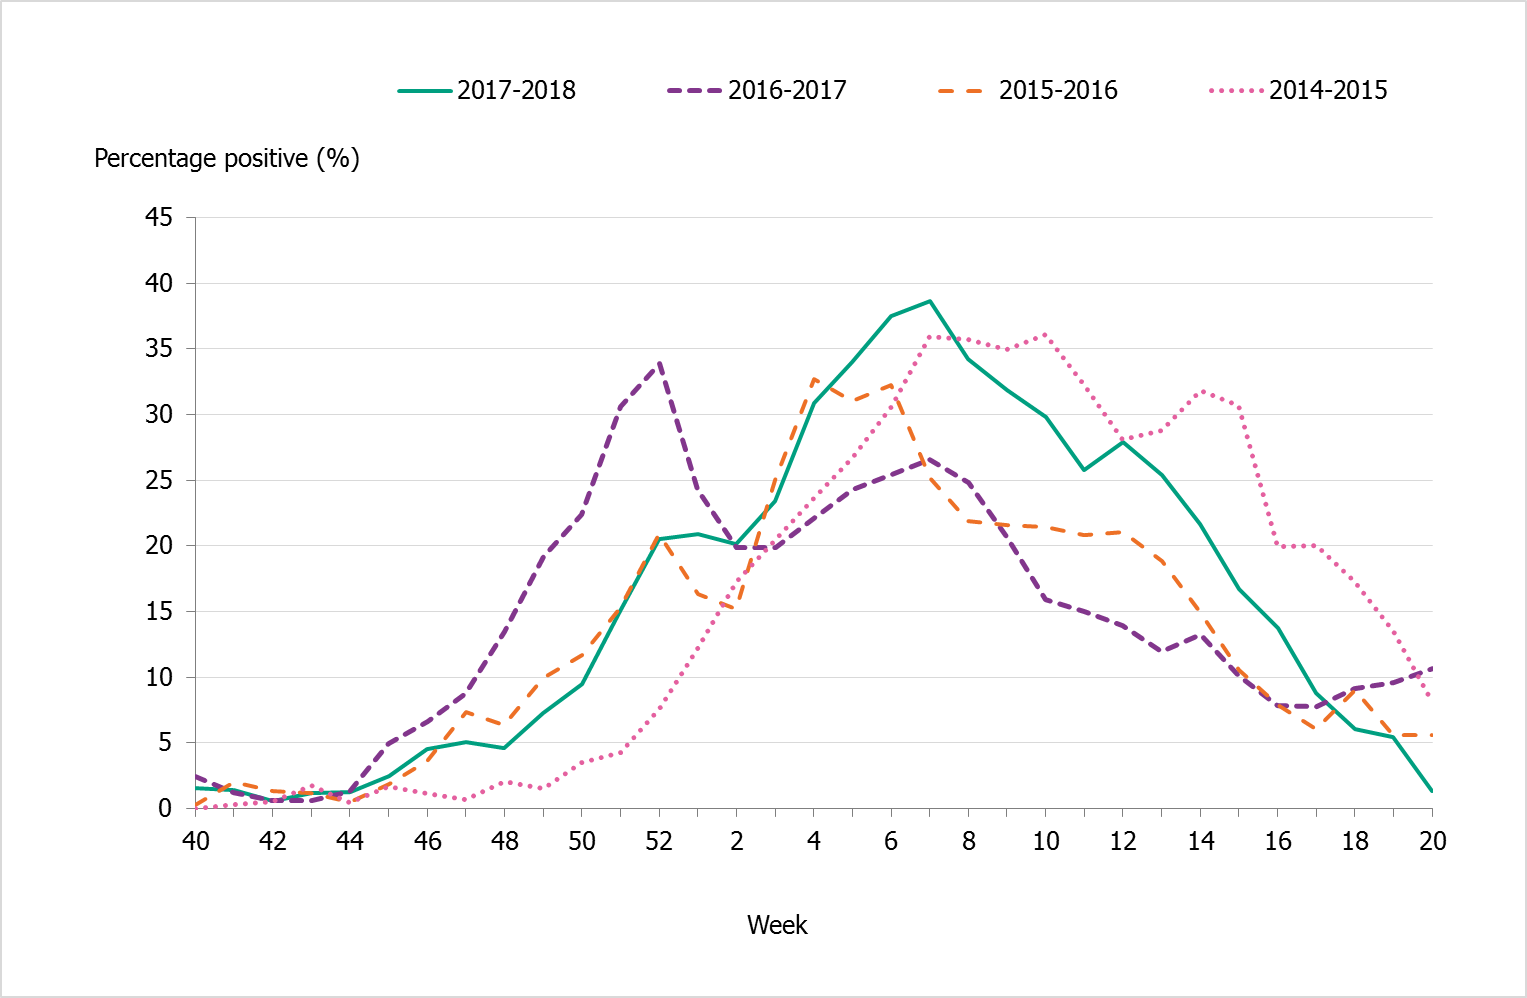 Percentage of samples testing positive for influenza, per week, 2014–2018. Peaks vary from about 33 to 37 percent.